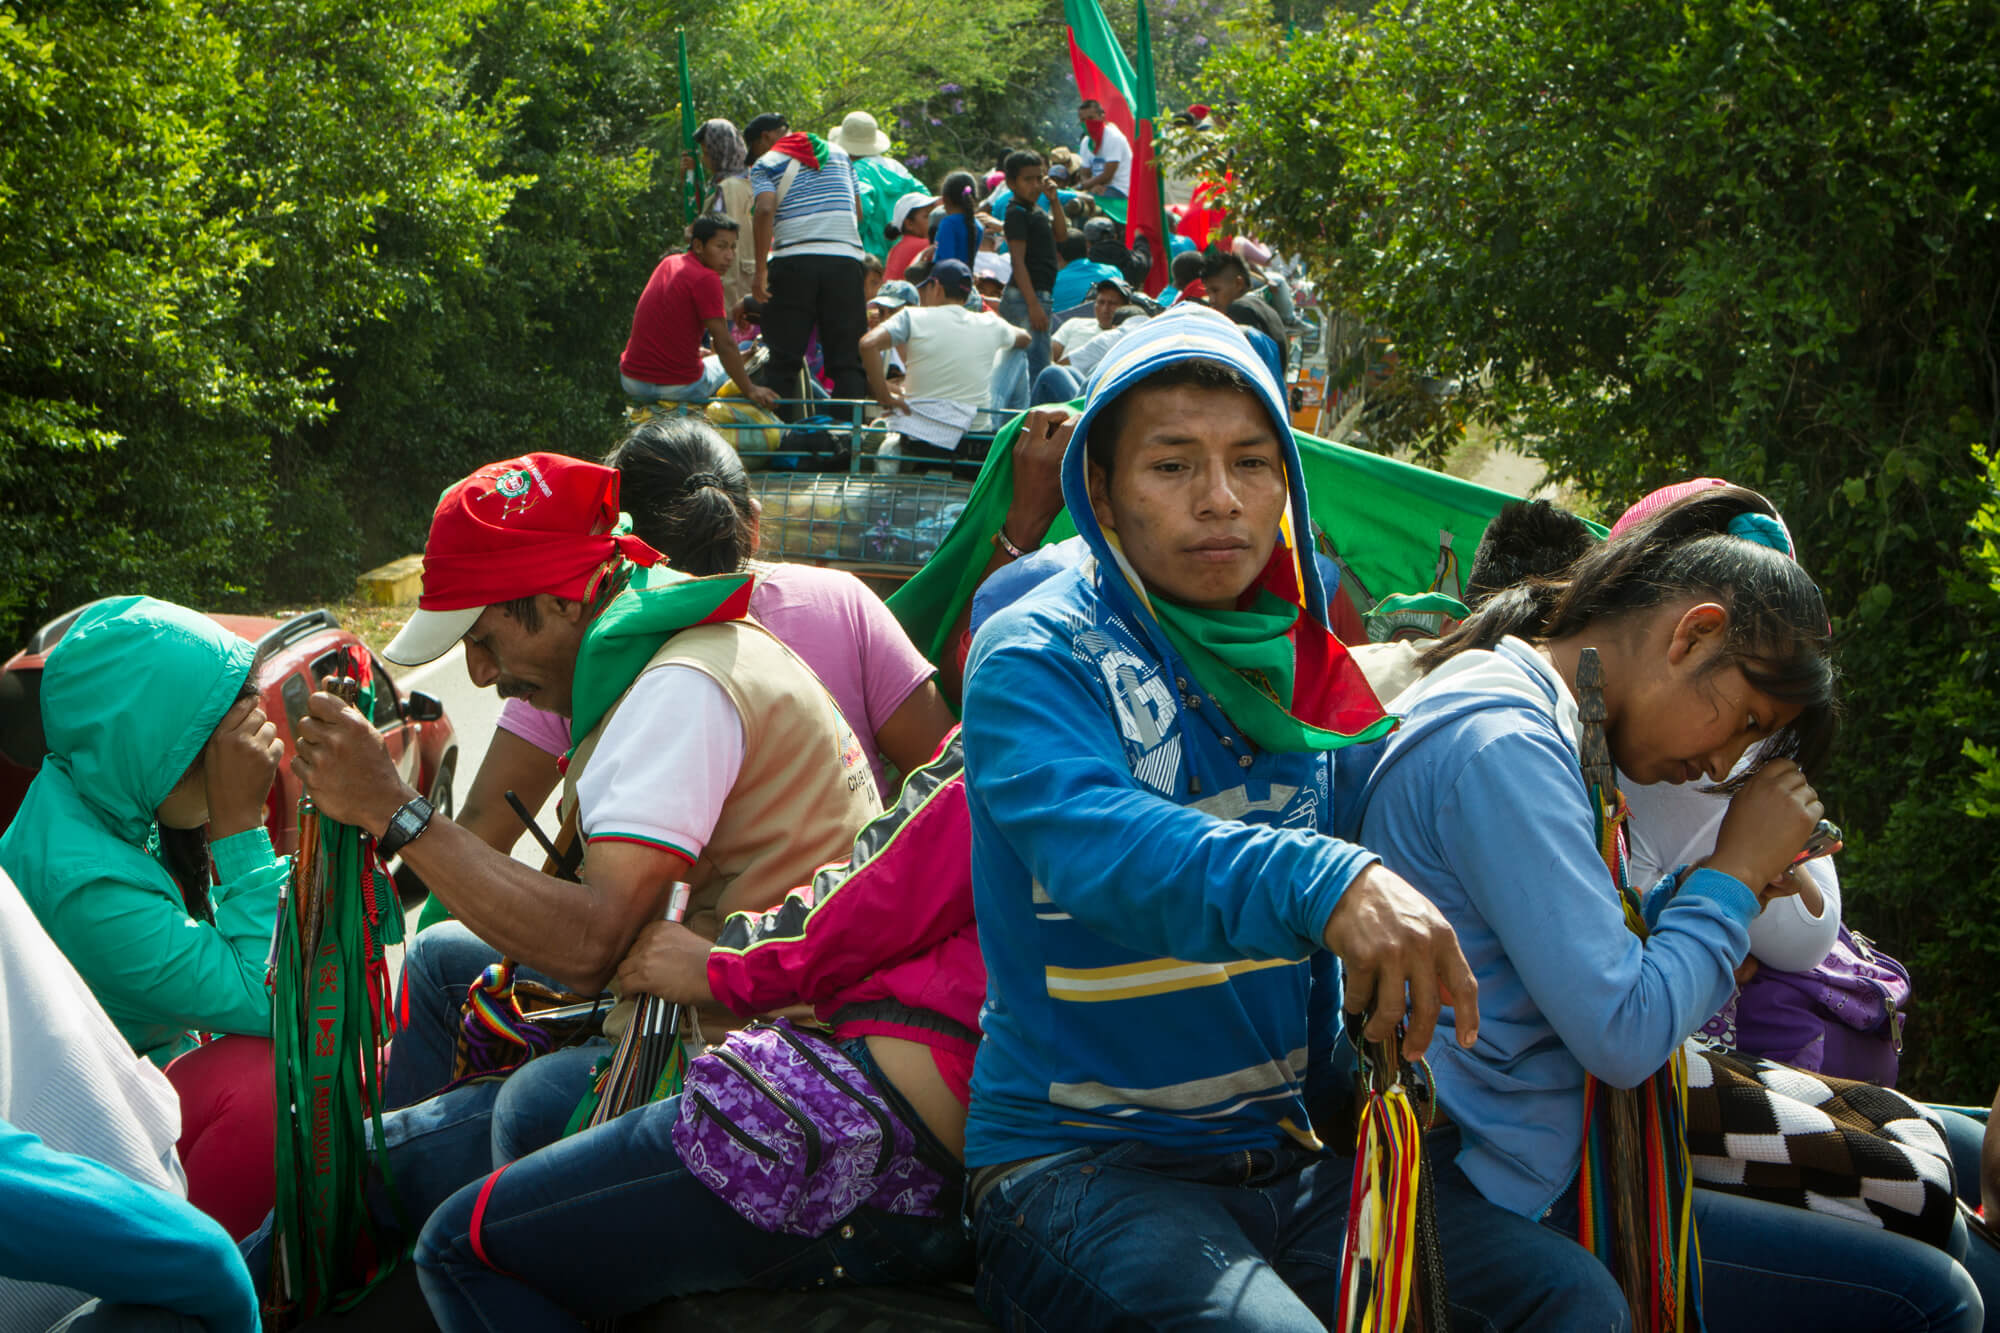 Thousands of people pile onto the tops of busses for a caravan procession to demonstrate he indigenous movement's support of the peace process. Photo: (C) Hanna Wallis